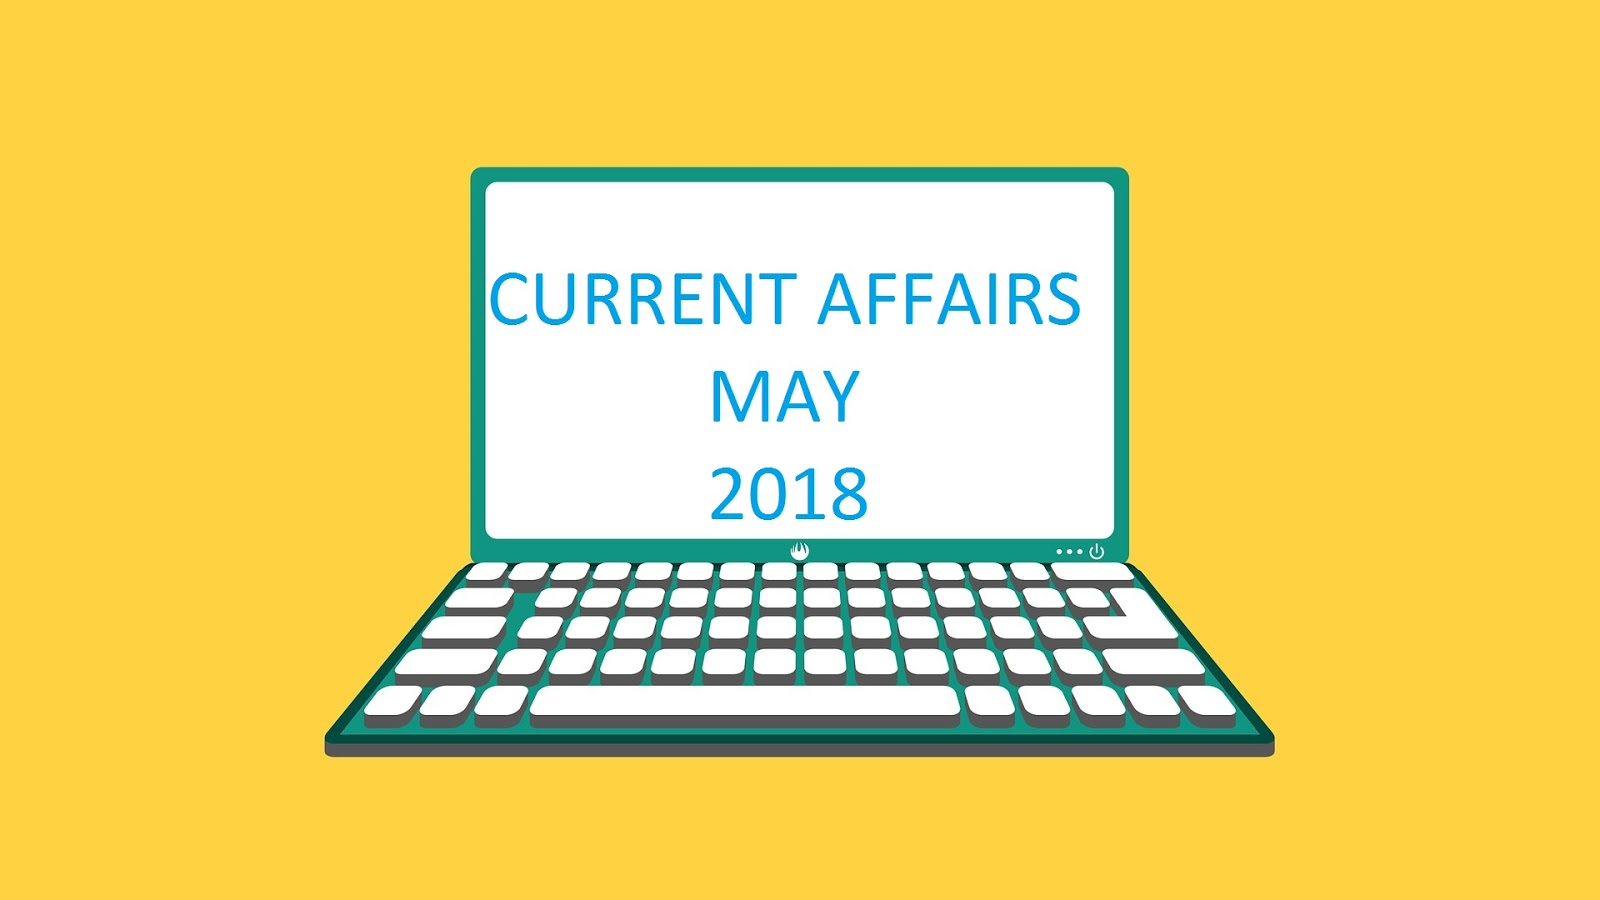 Current Affairs questions and answers - May 2018 ~ GK Globe